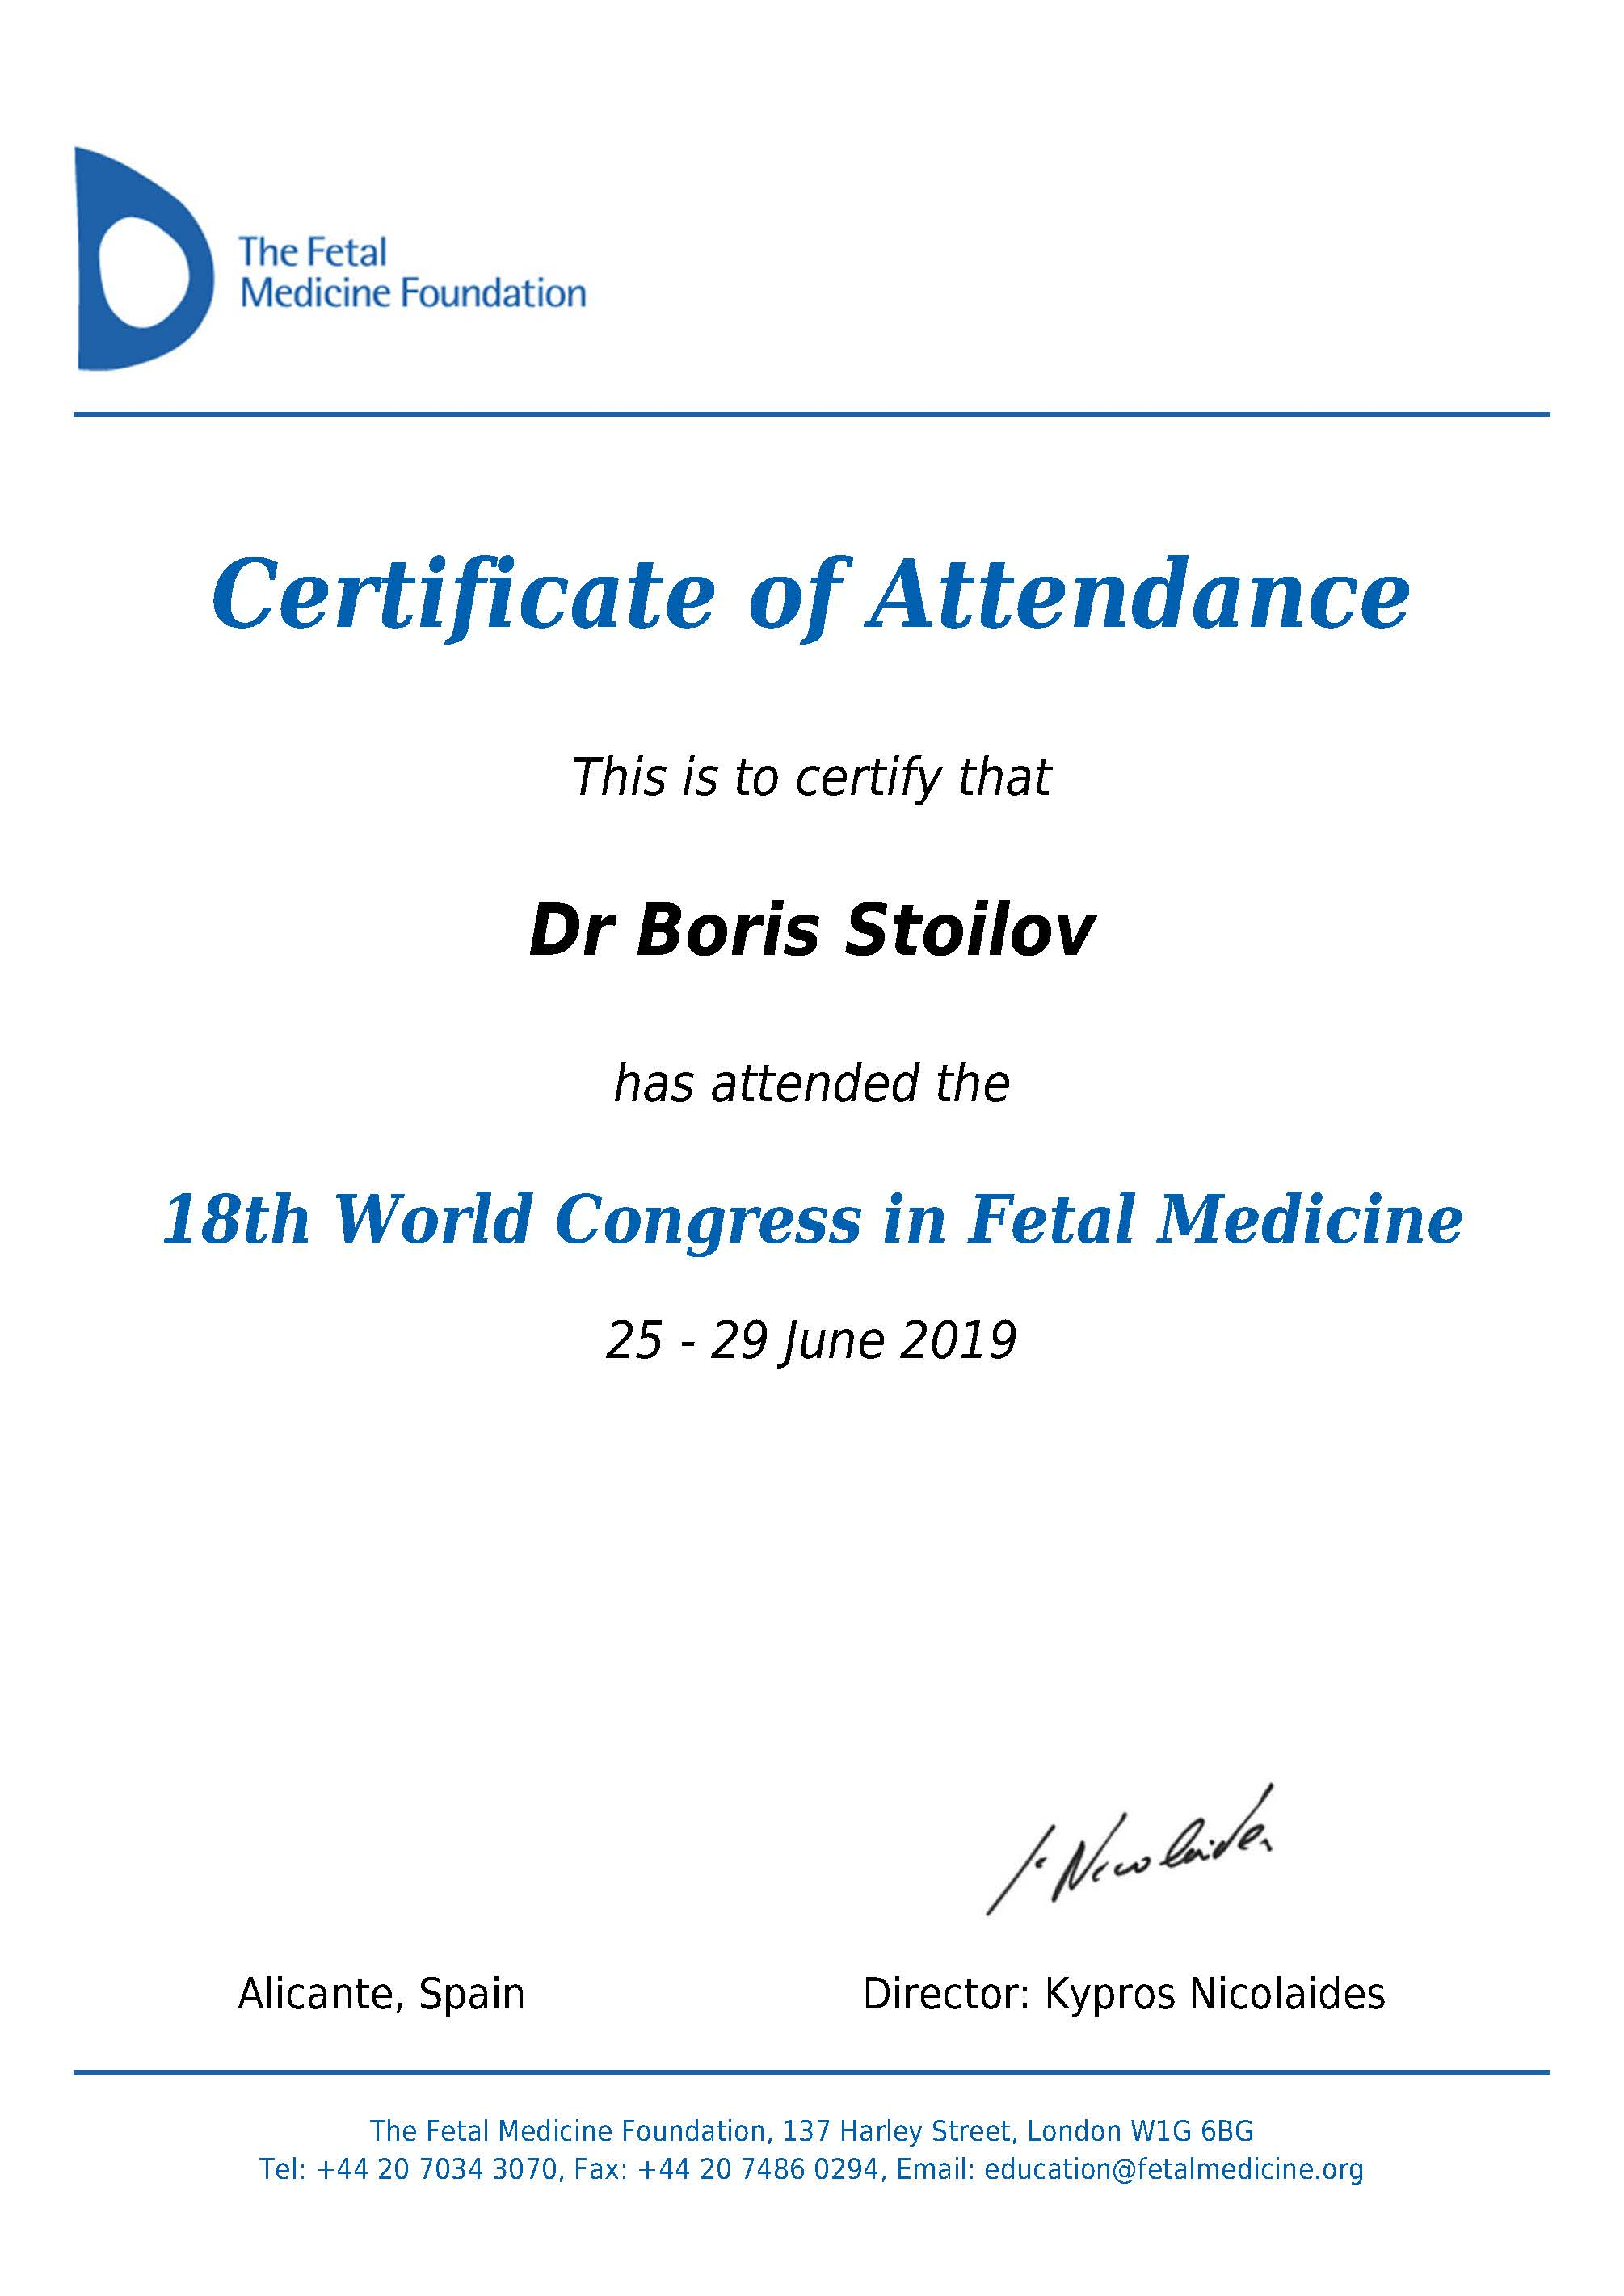 18th World Congress in Fetal Medicine